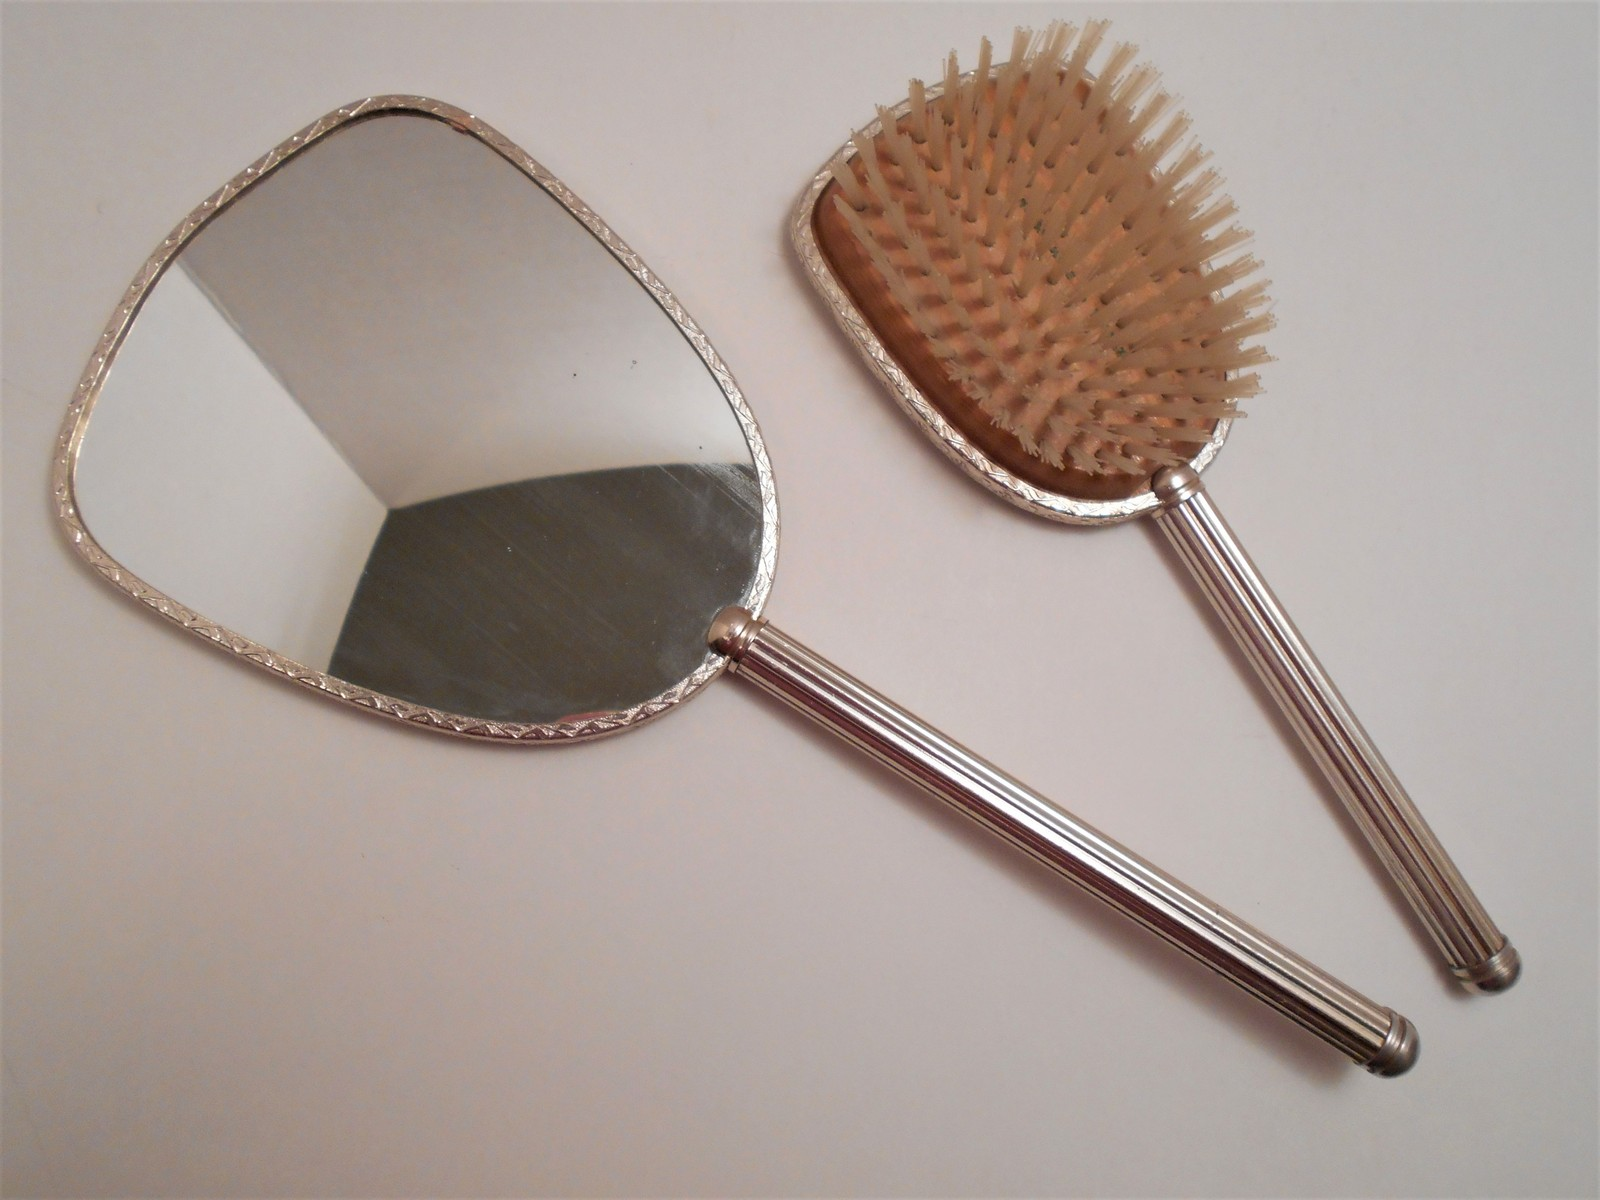 Vintage Bird Picture Hand Mirror & Brush Made in England image 3